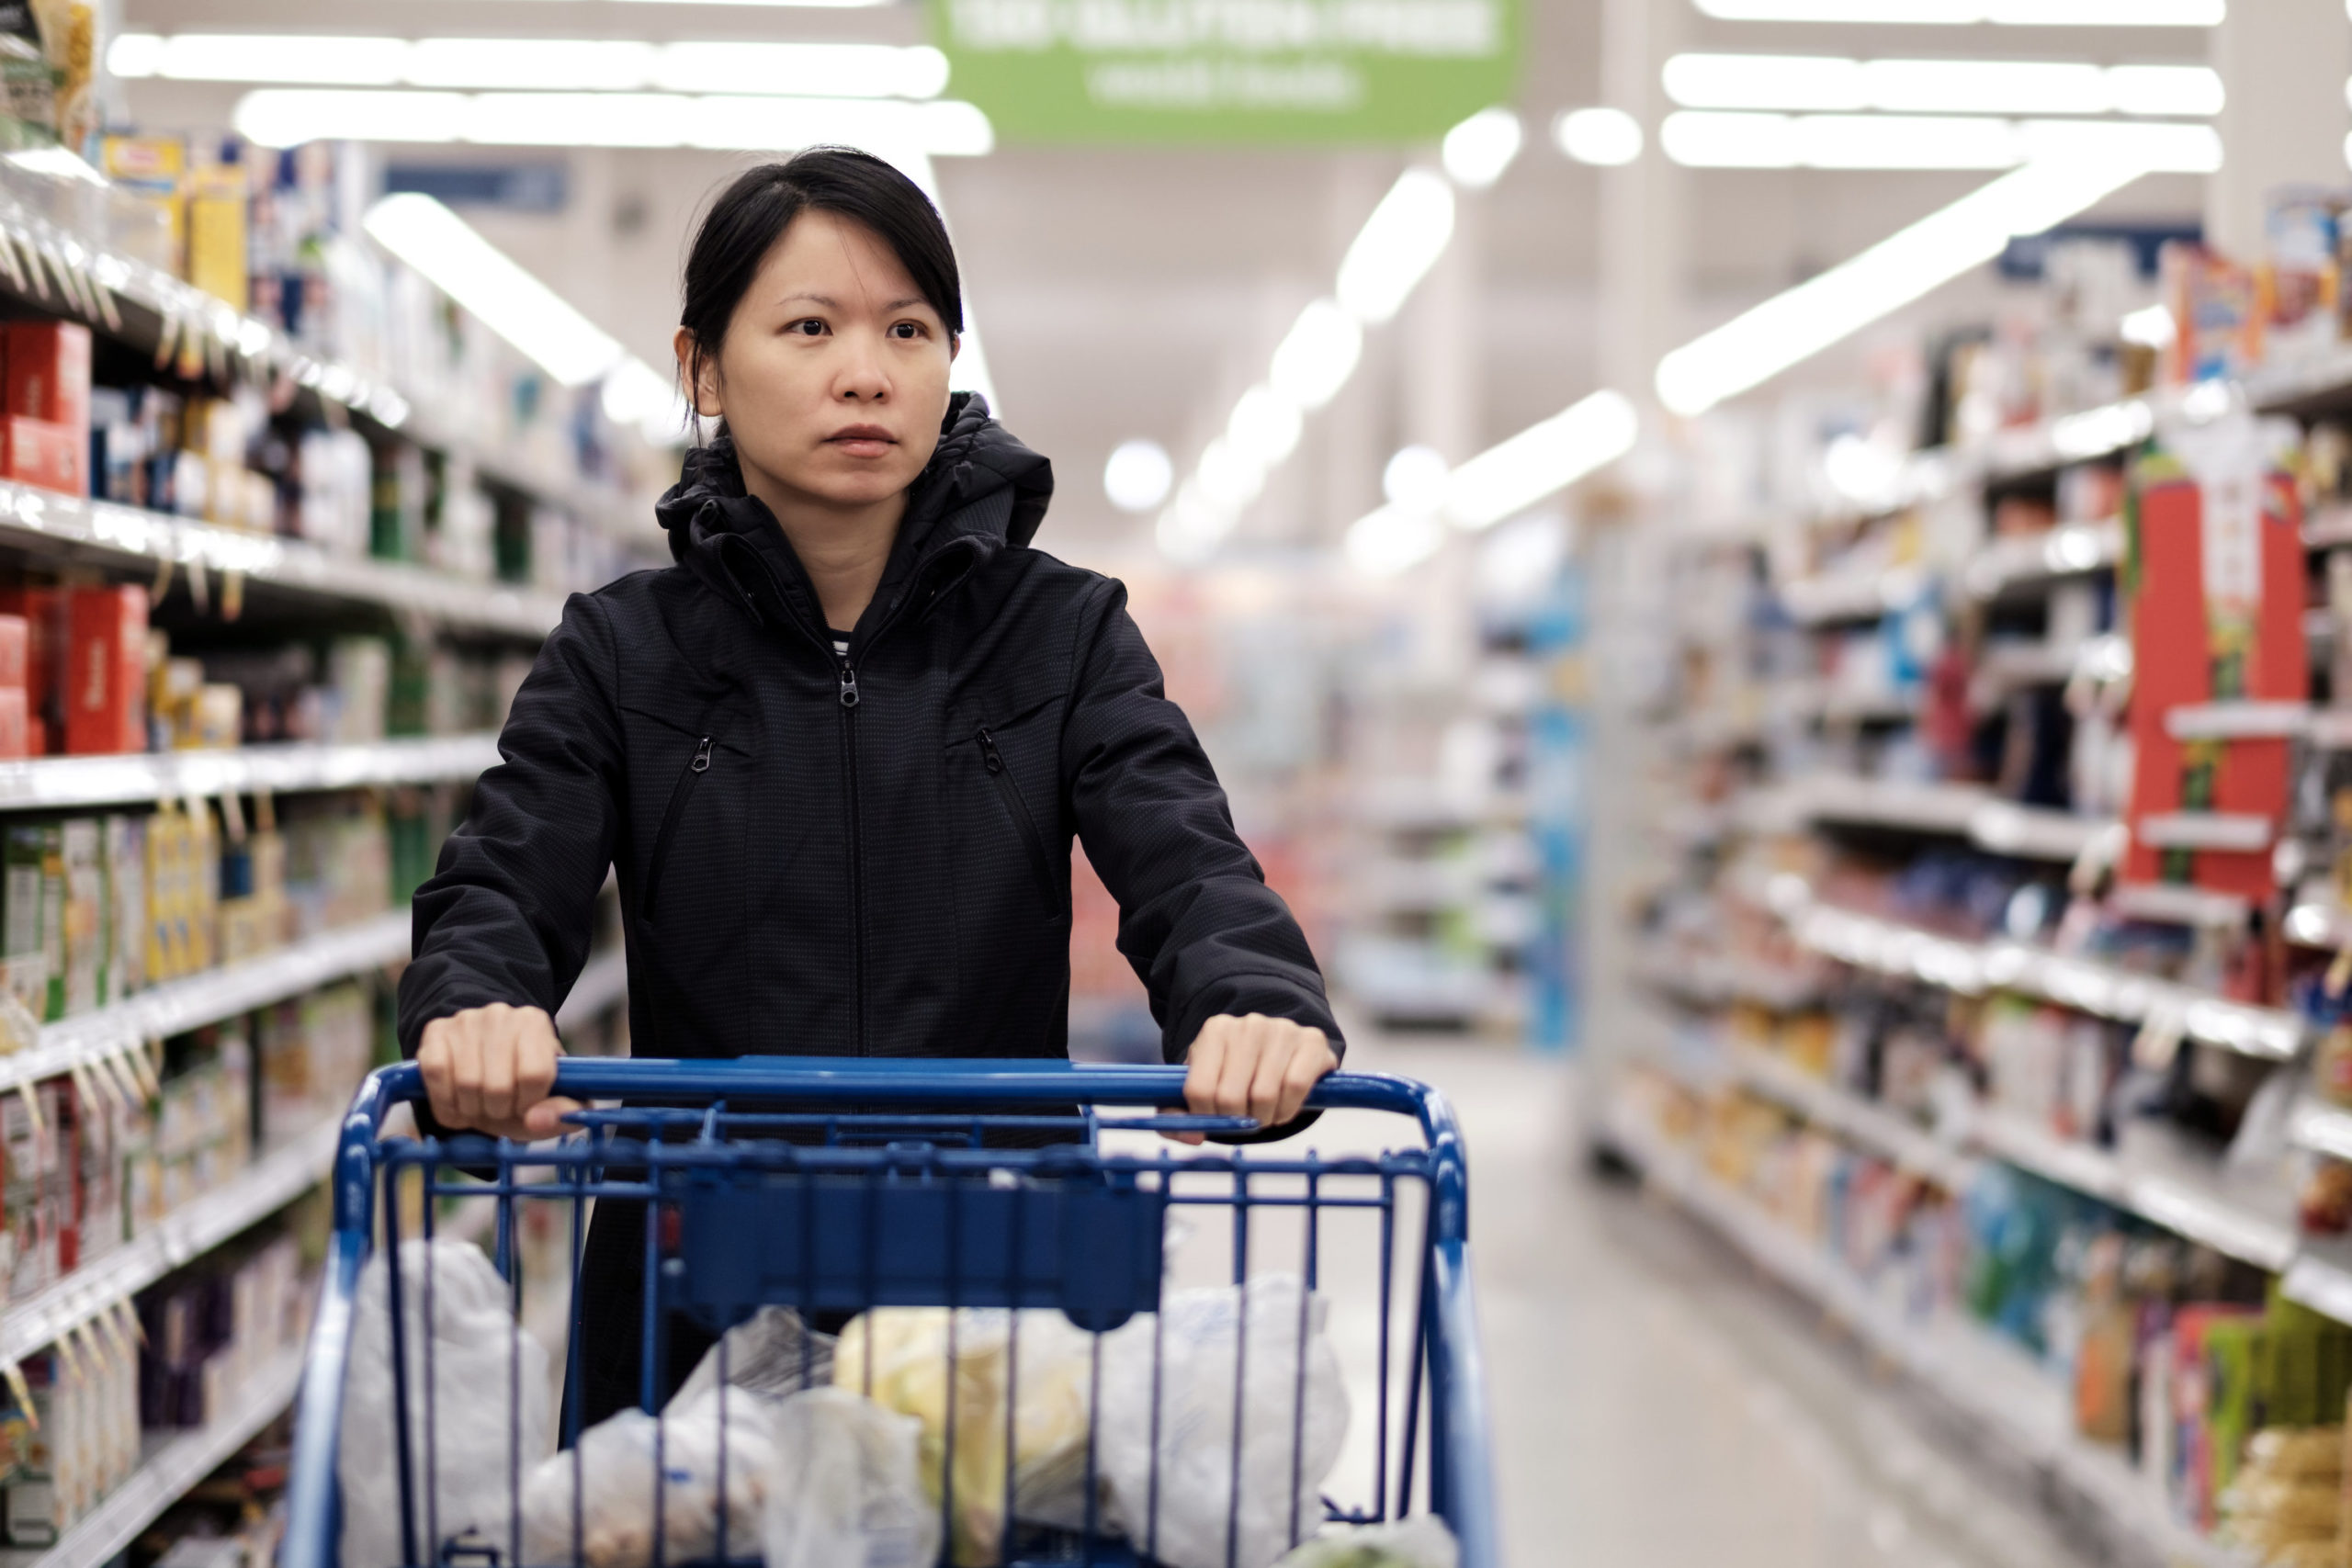 7 Grocery Items To Get From Asian Grocery Store